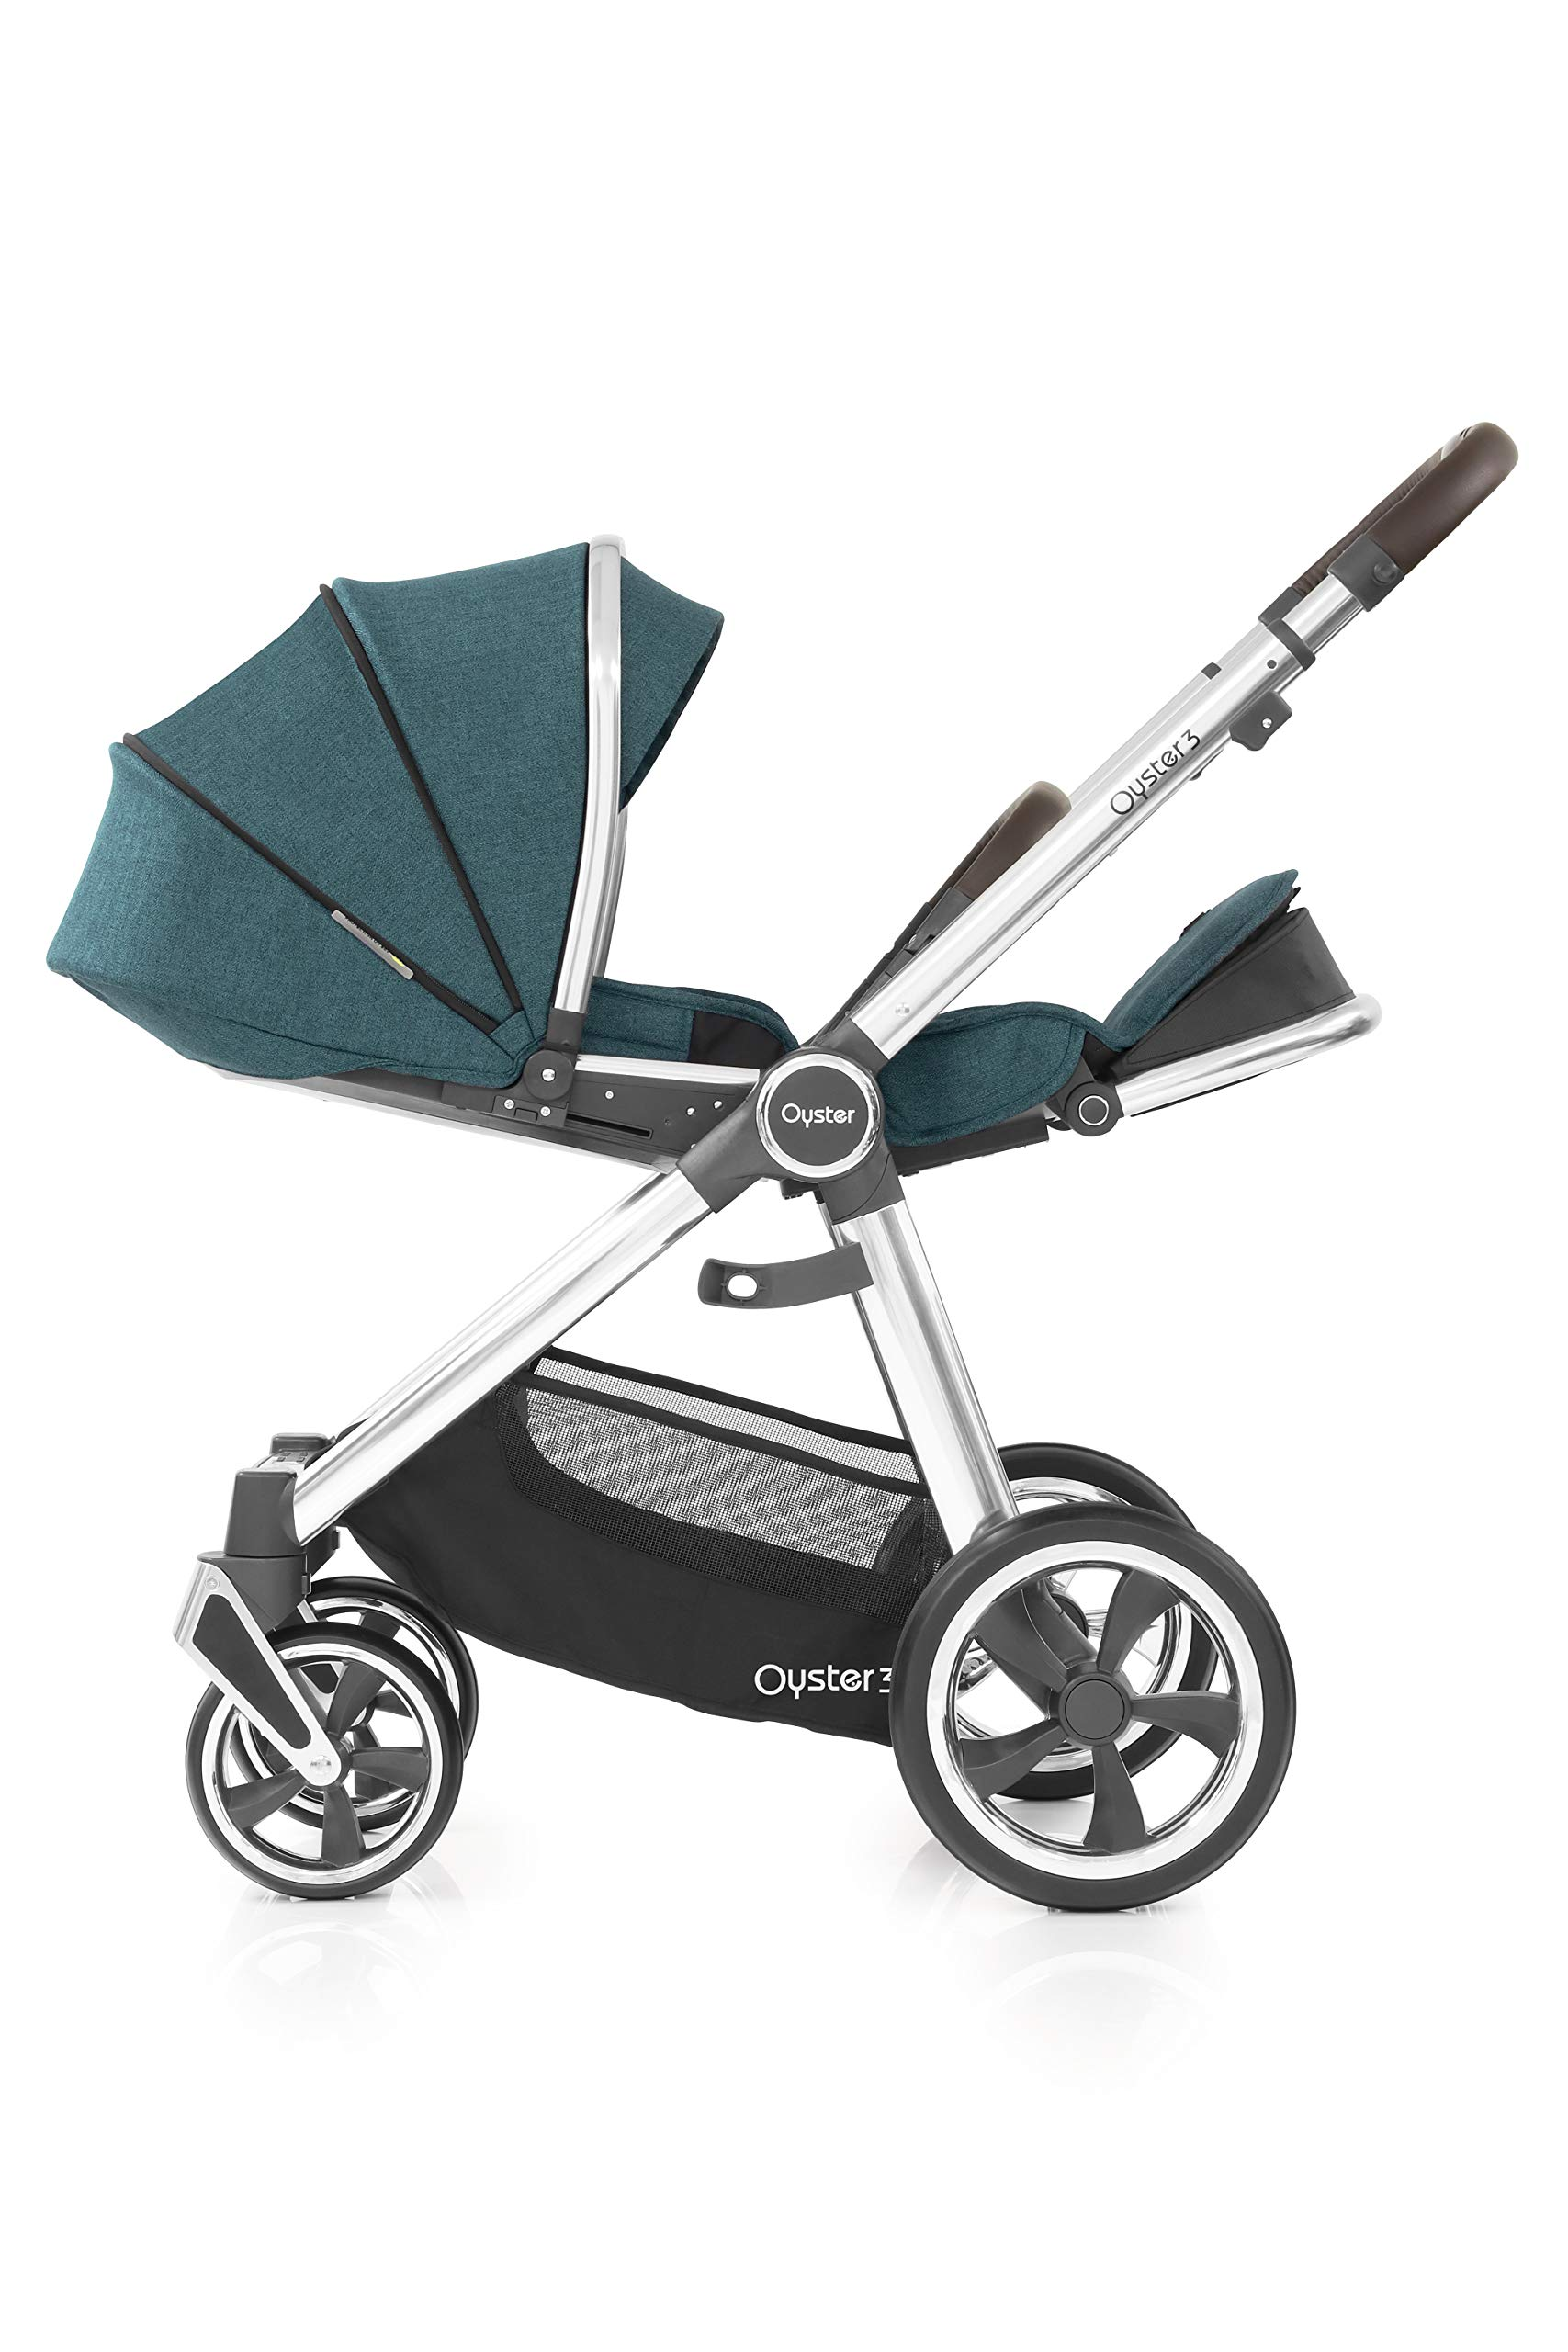 Babystyle Oyster3 Pushchair in Peacock Mirror Chassis Babystyle  5